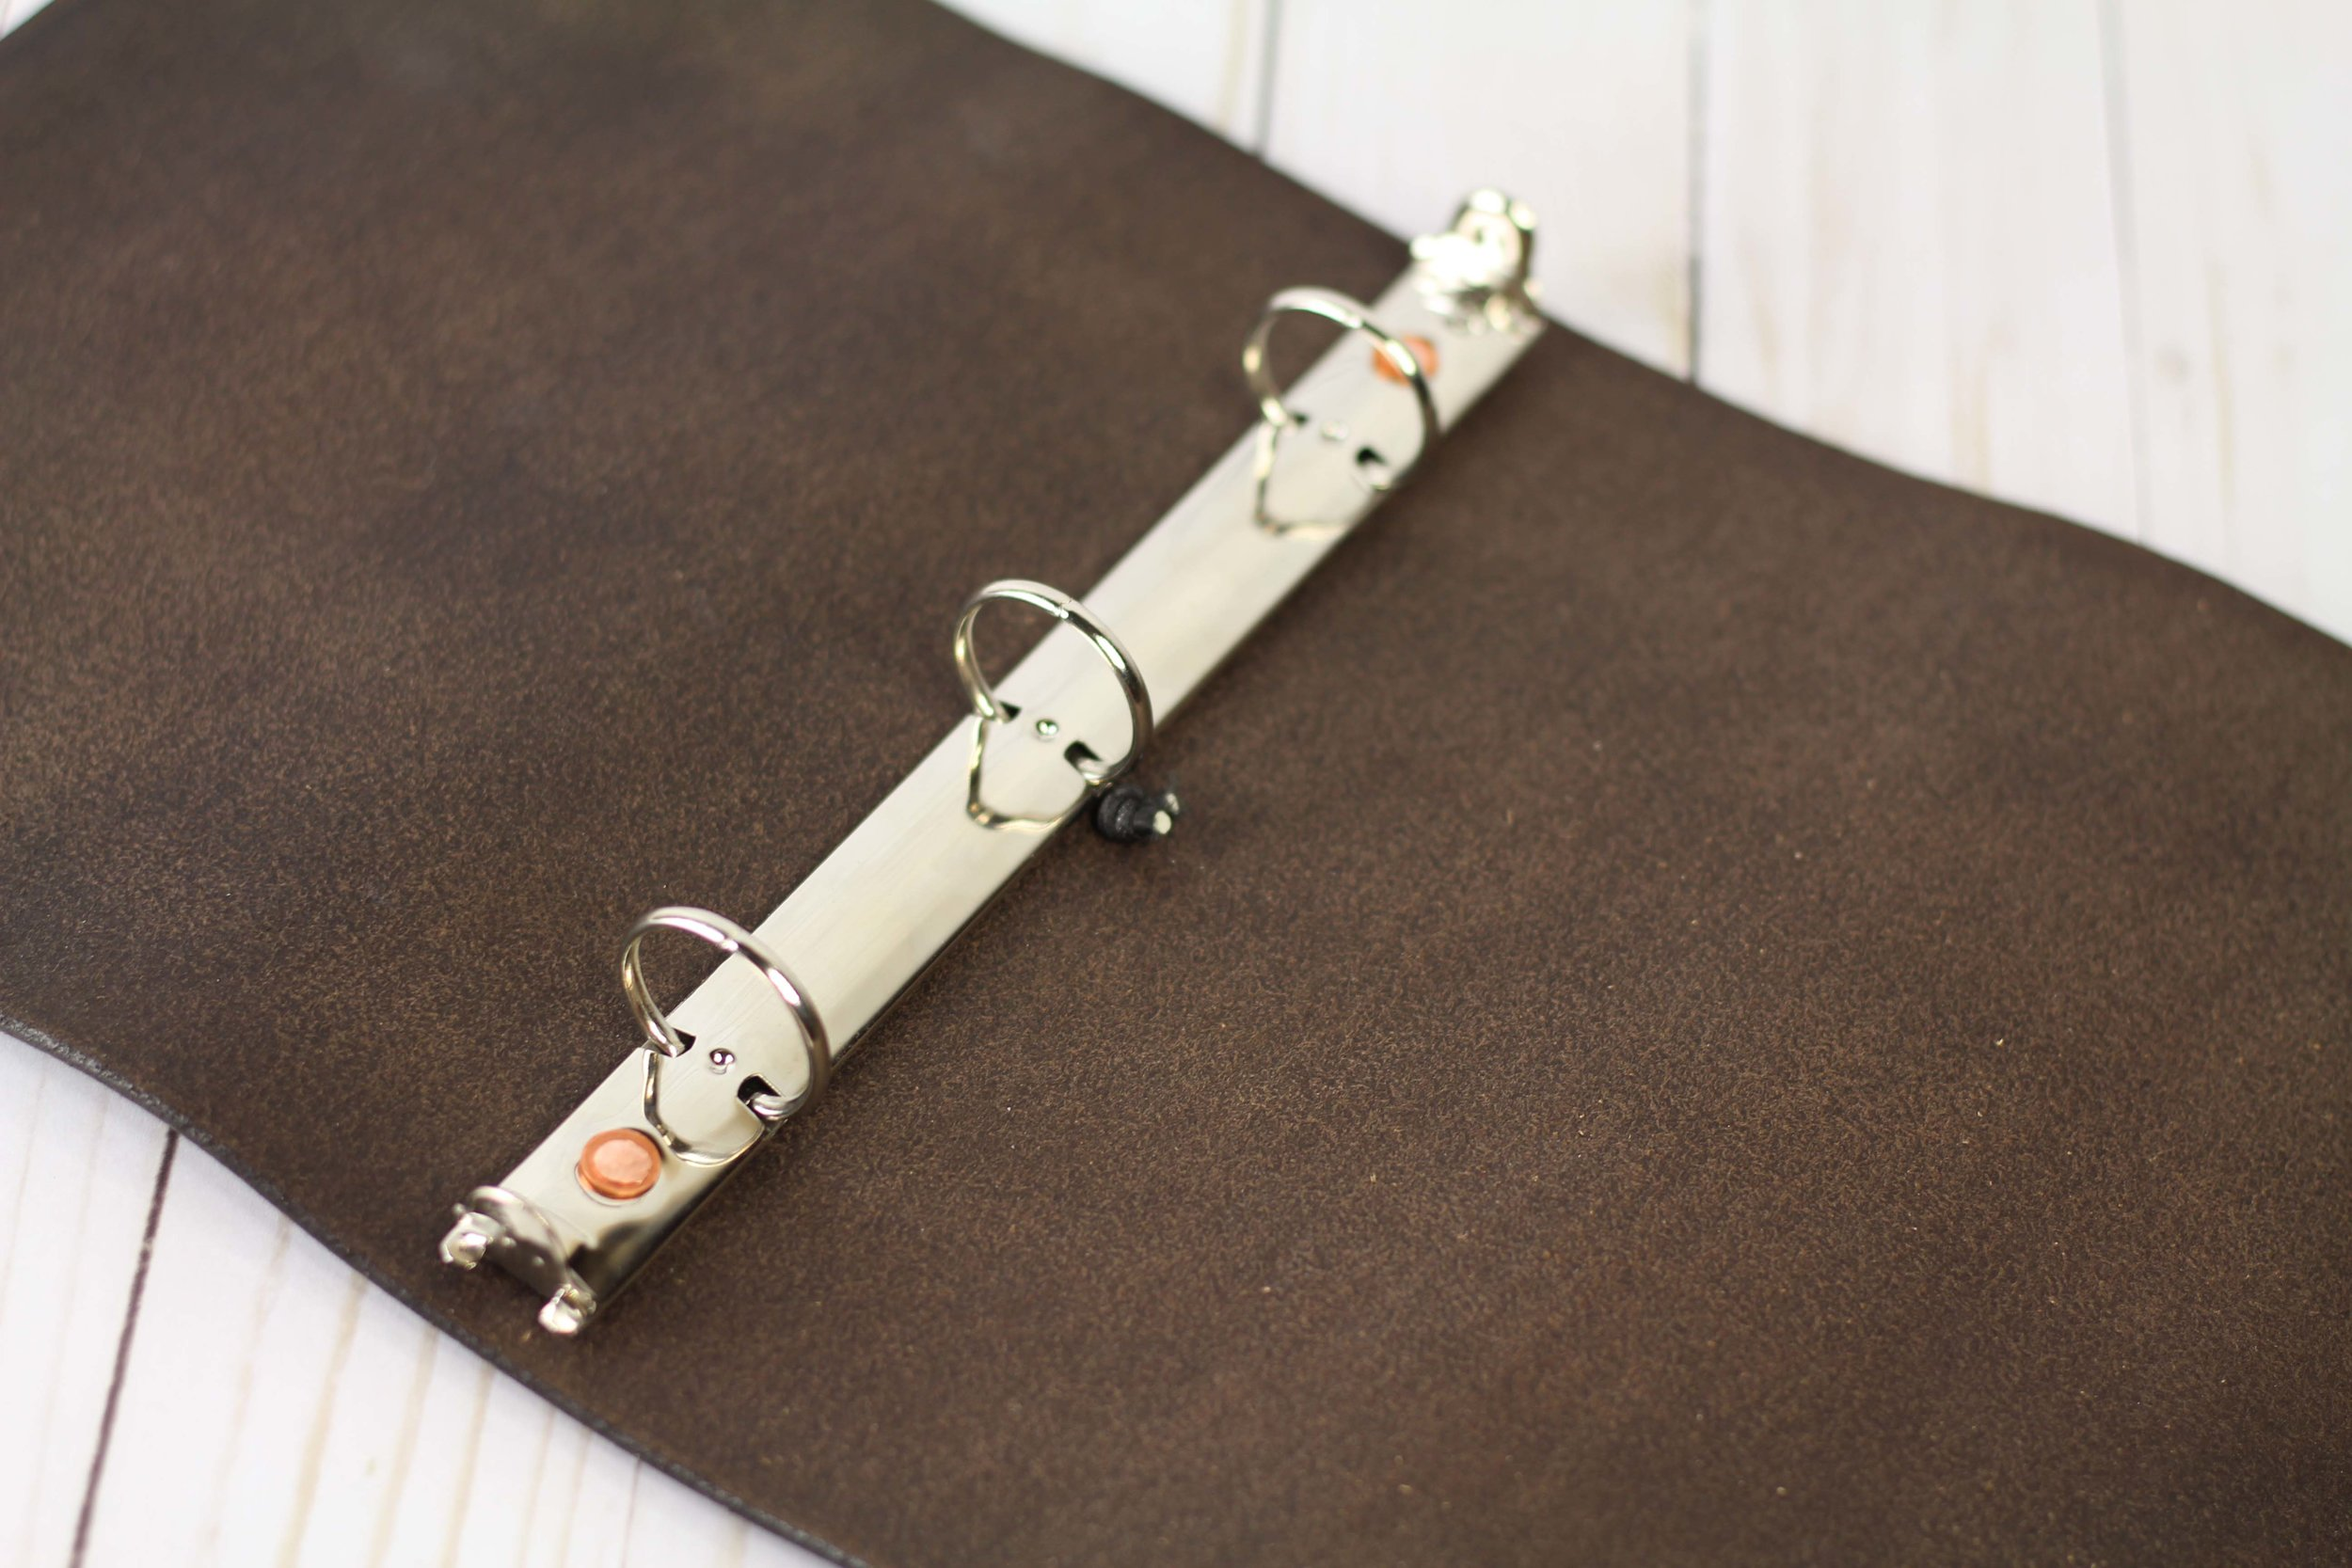 Leather Ring Planner - 3 Ring Leather HALF SHEET Size Binder 17 COLORS!! —  The Leather Quill Shoppe